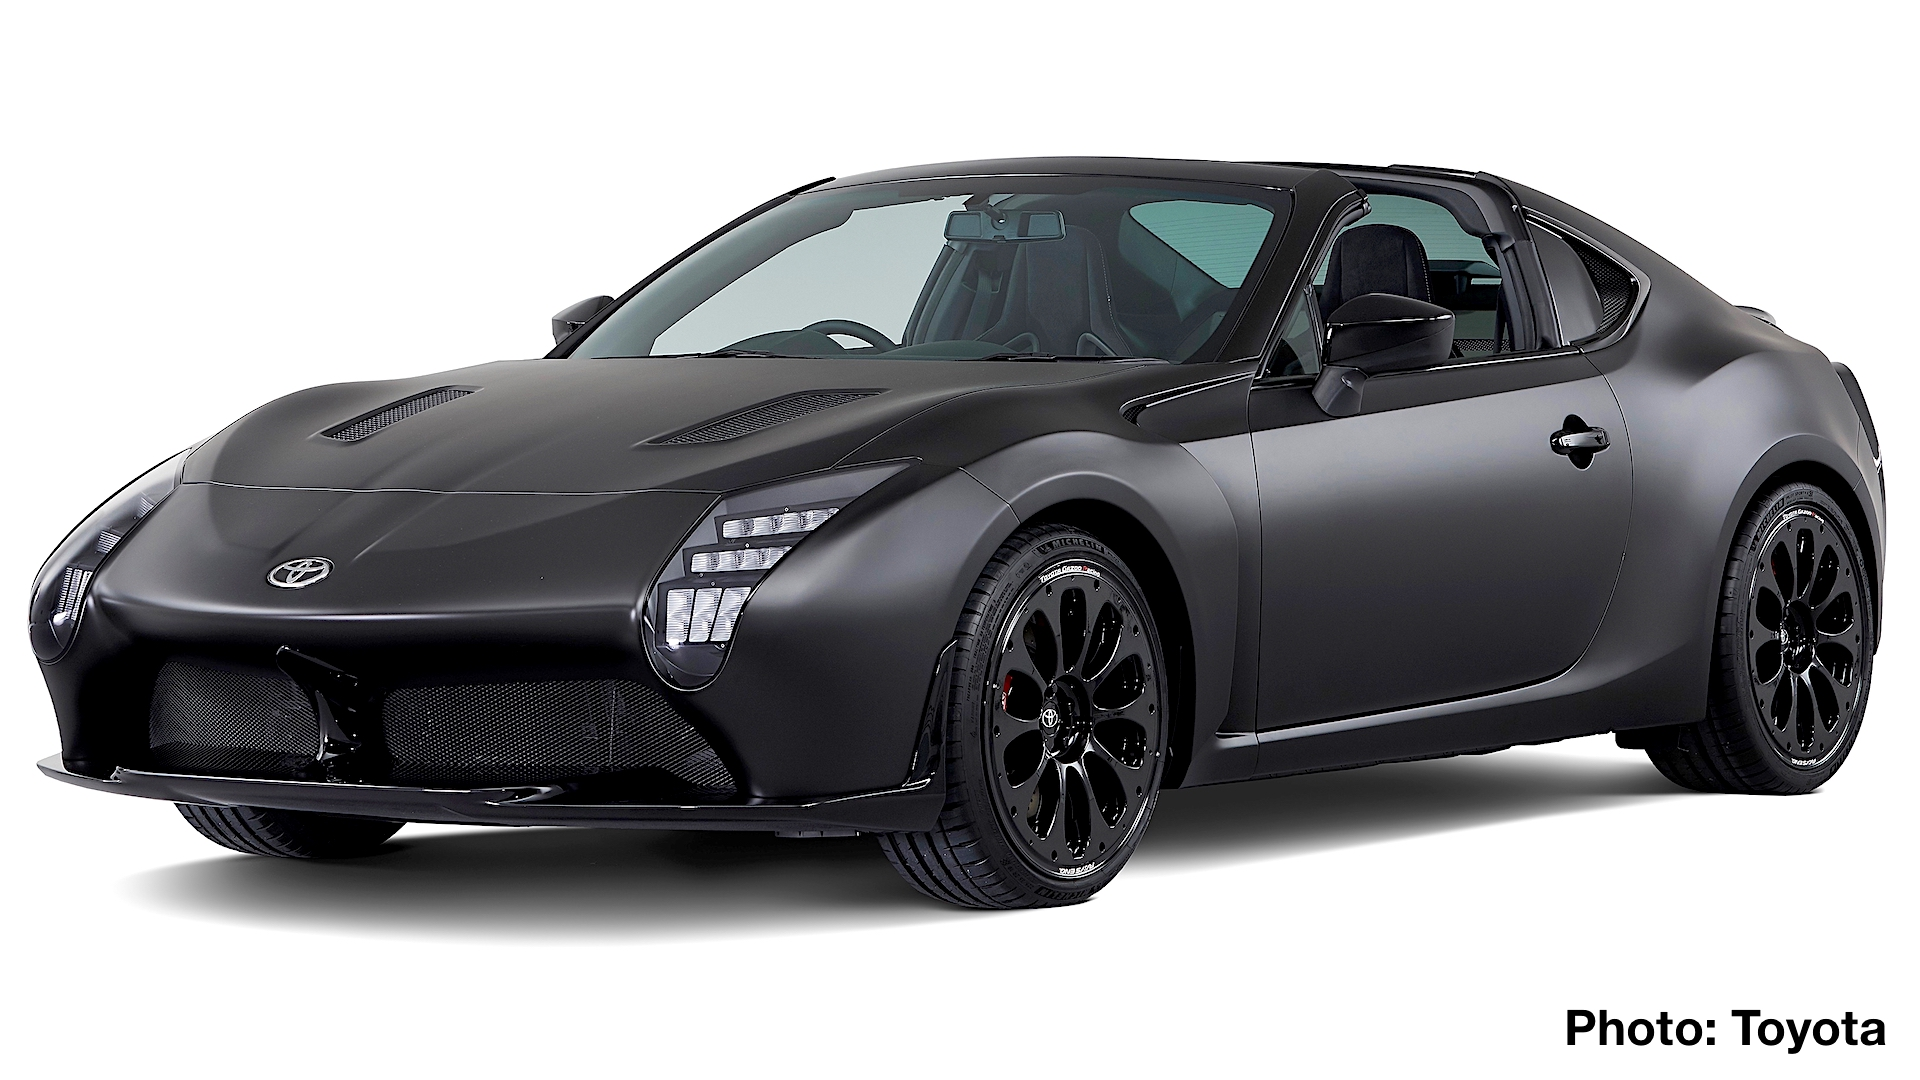 At First Glance The New Gr Hv Sports Looks Like A Larger Toyota 86 However This Rear Drive Two Seater Is Longer And Wider While Also Featuring Hybrid